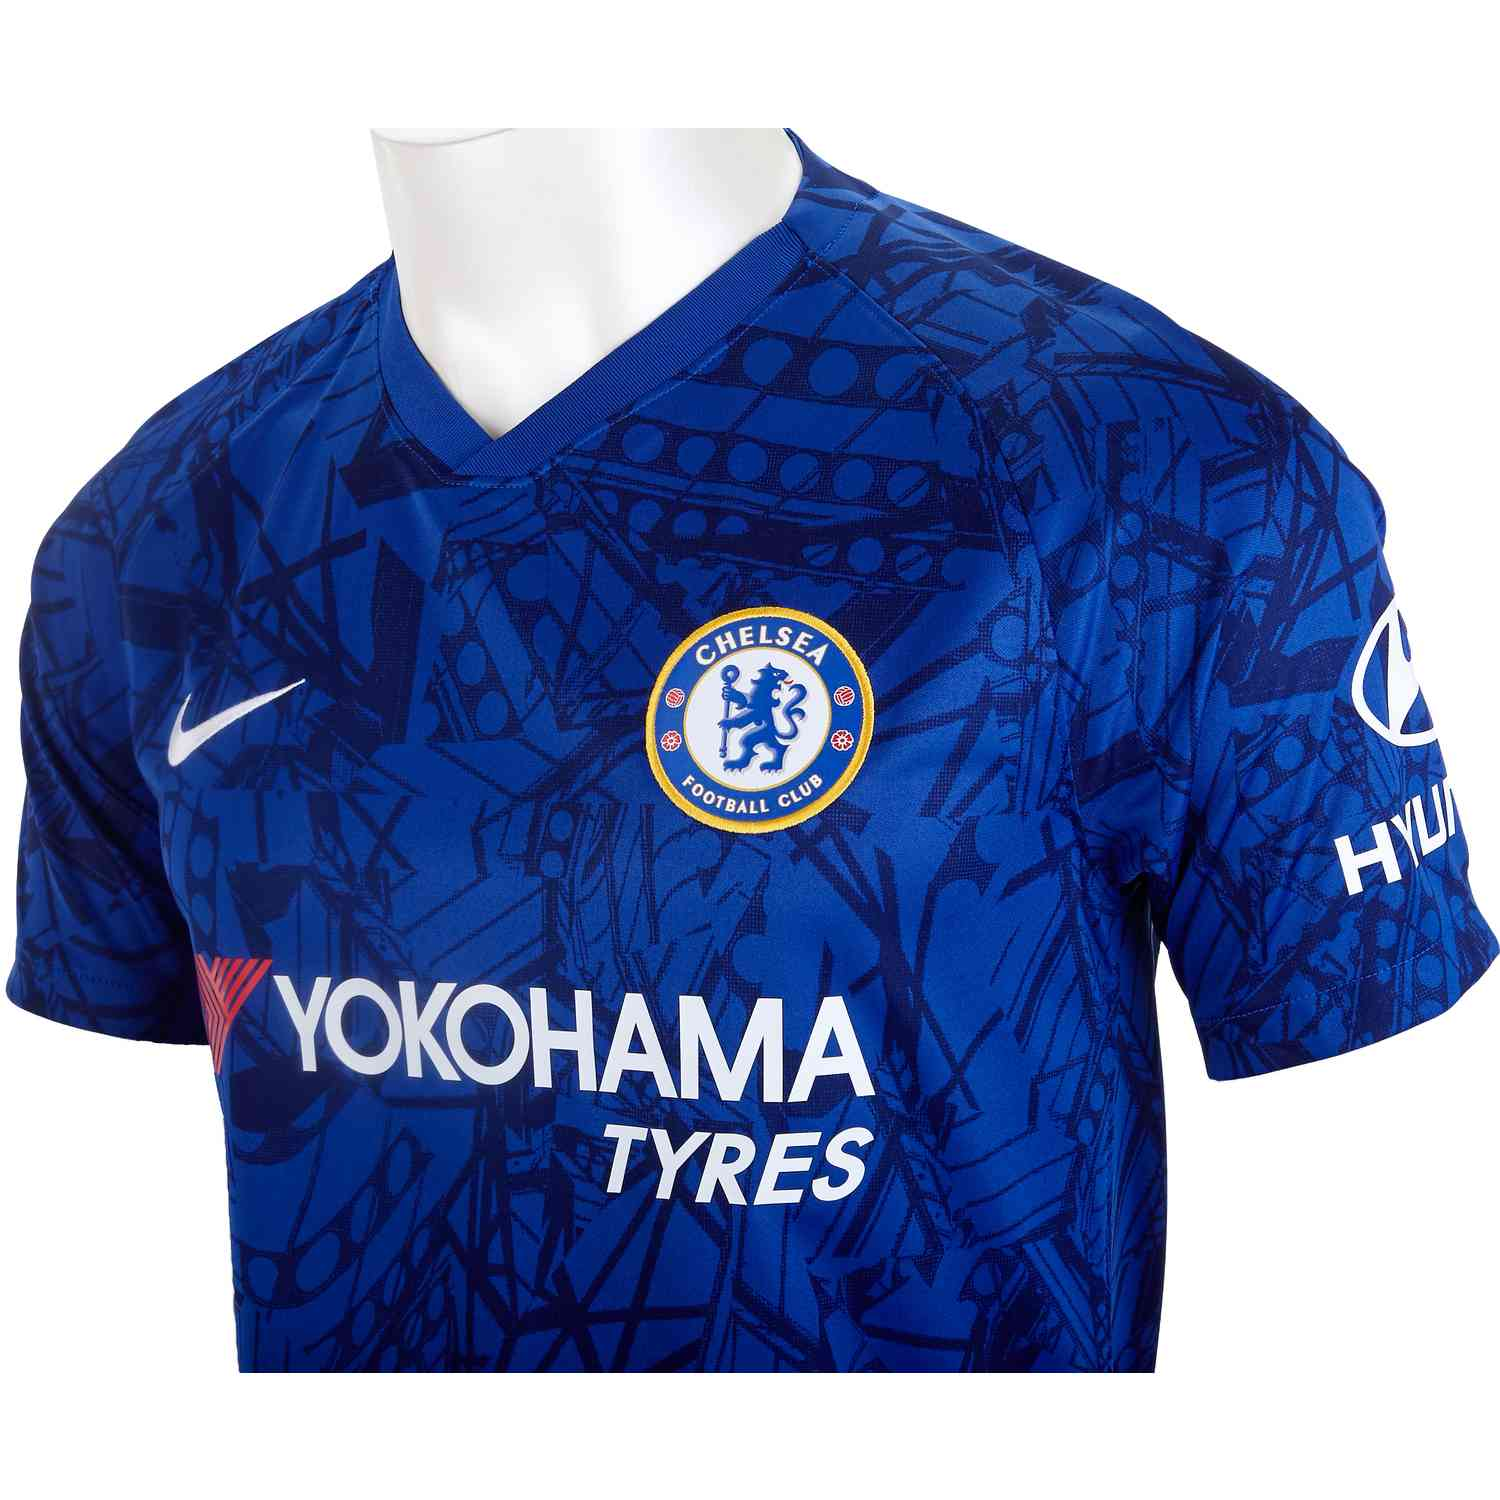 low priced f49cc 67657 2019/20 Nike Jorginho Chelsea Home Jersey - SoccerPro